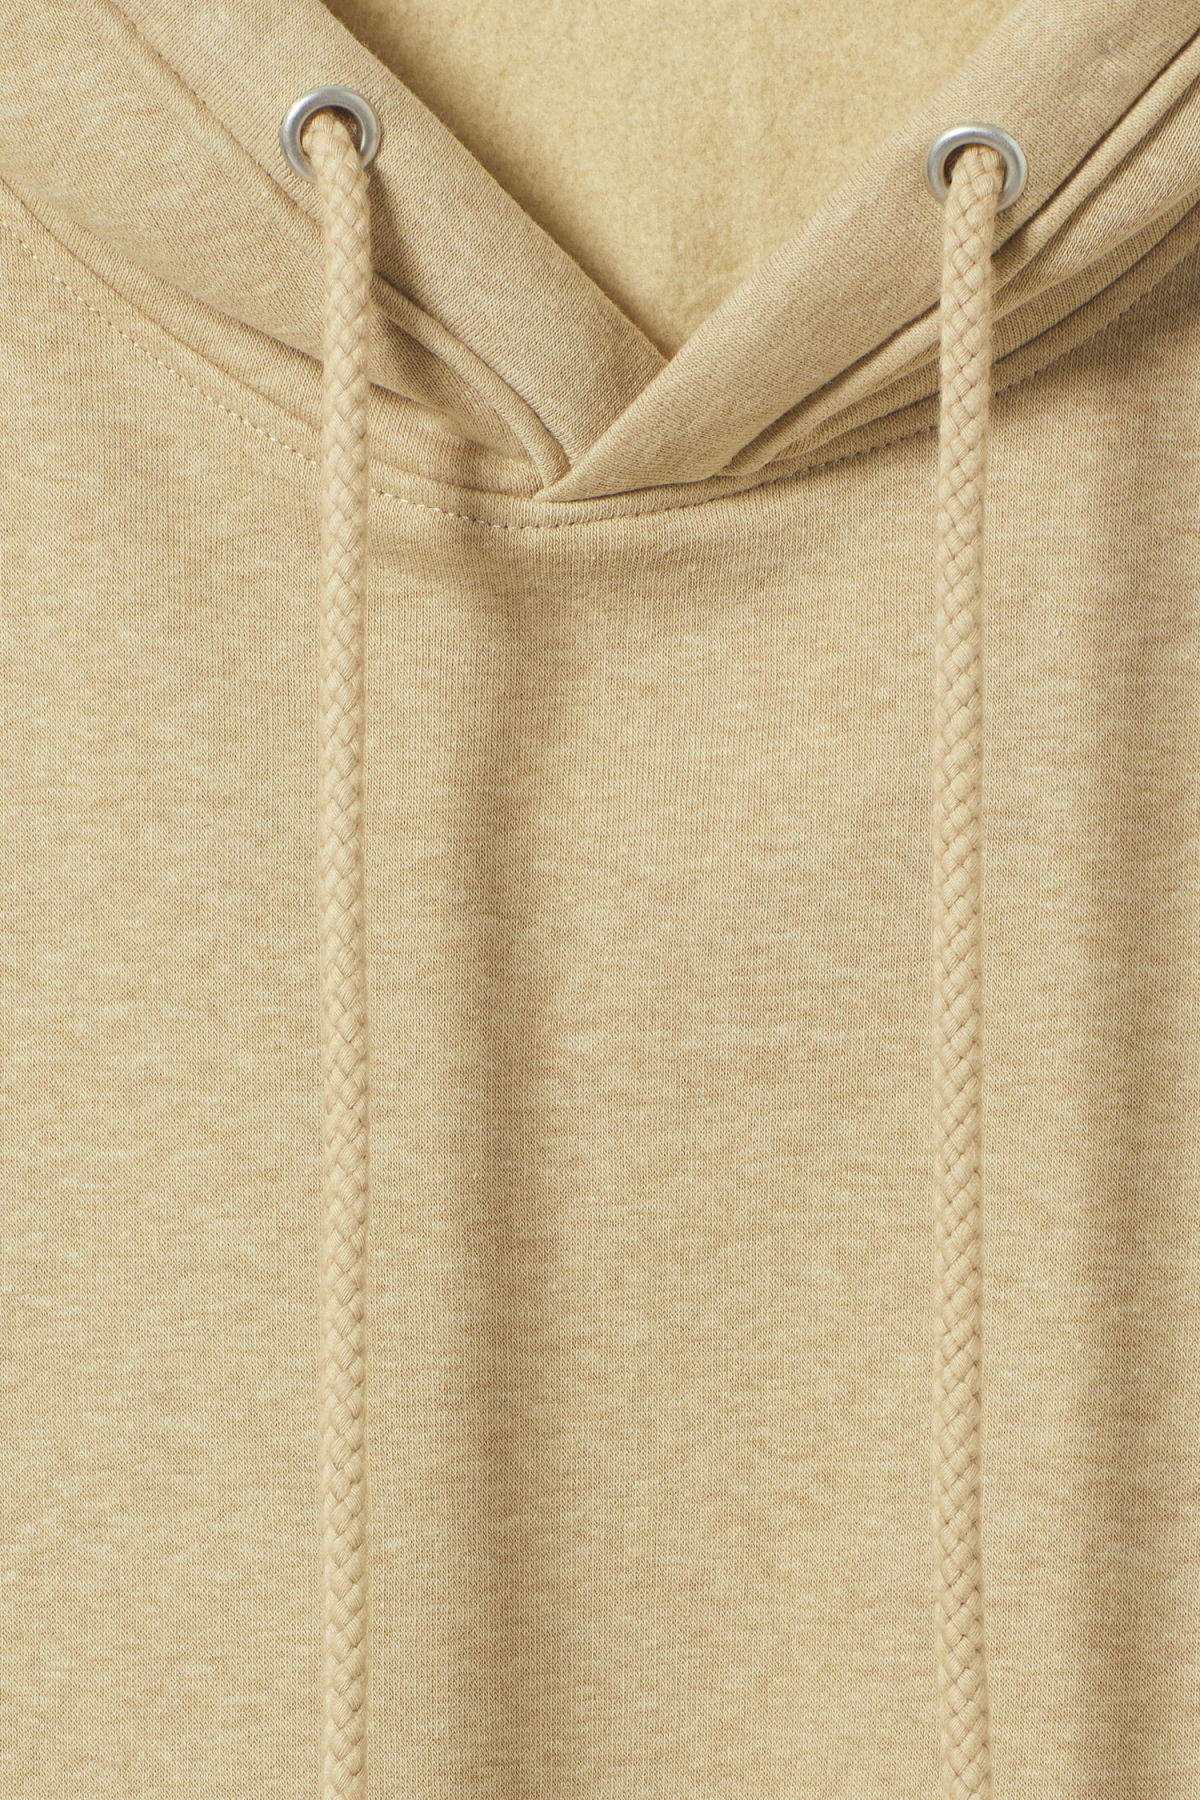 Detailed image of Weekday ailin hooded sweatshirt in beige